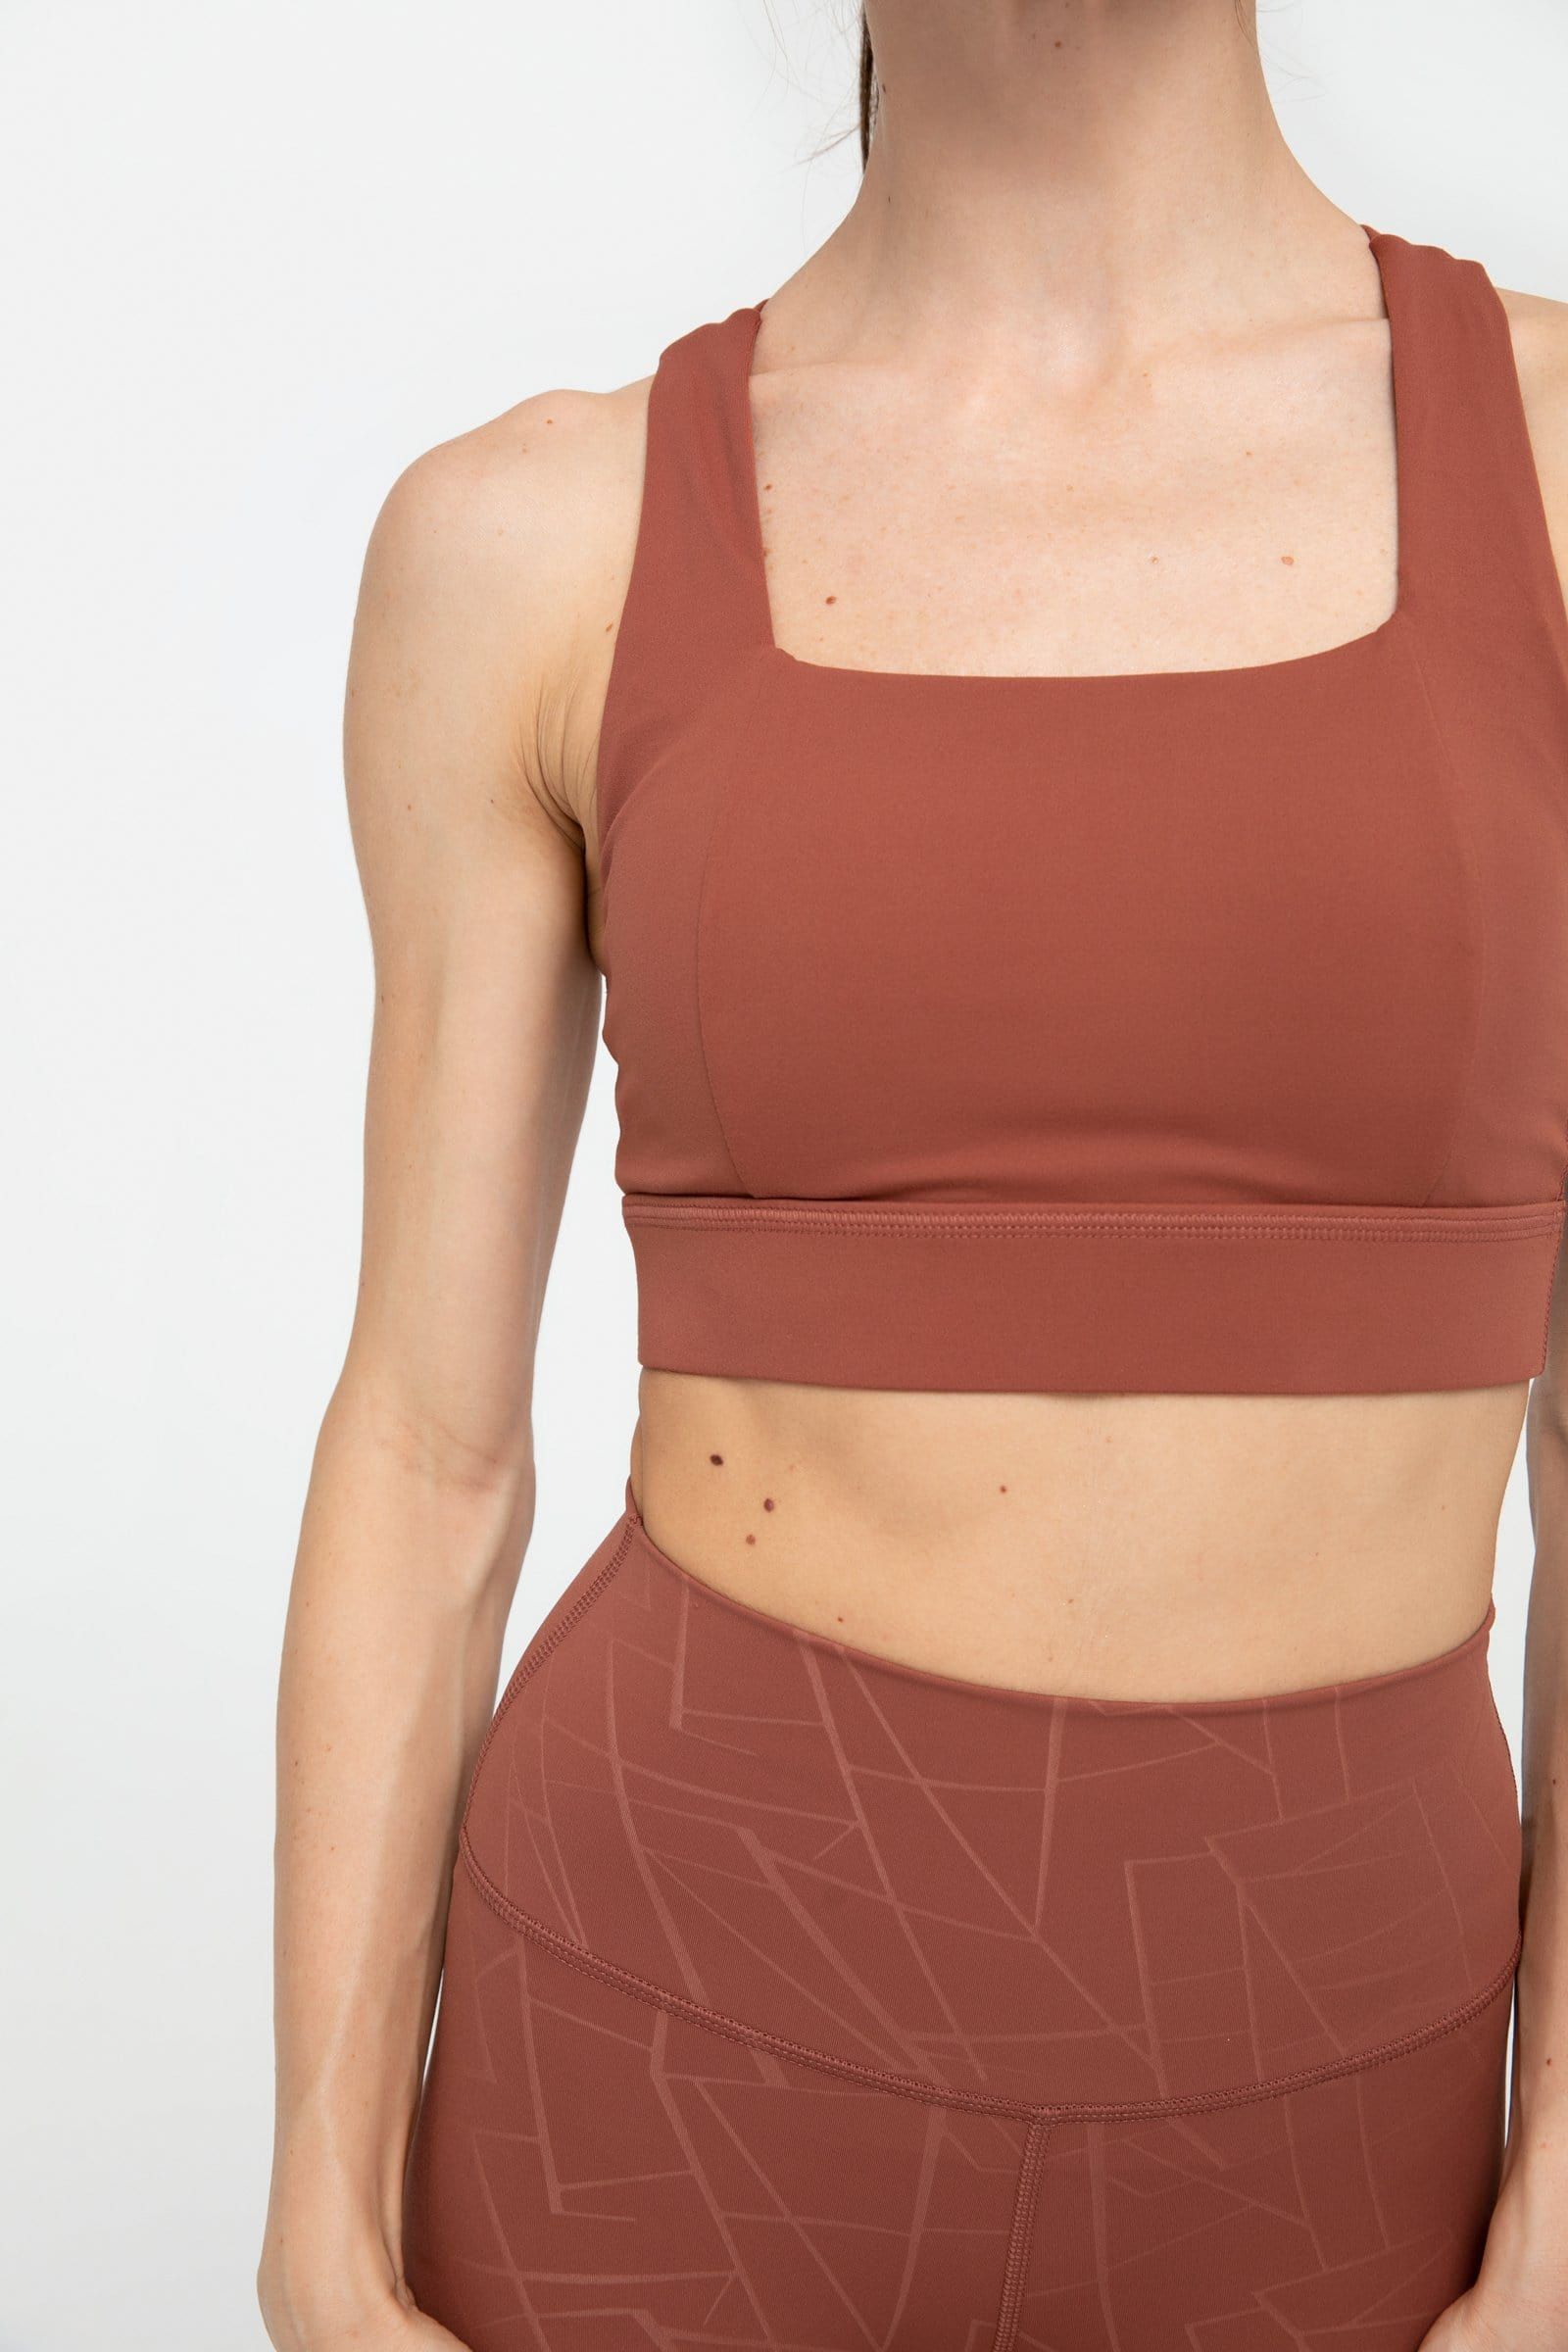 Brushed Clay Bandage Bra Top